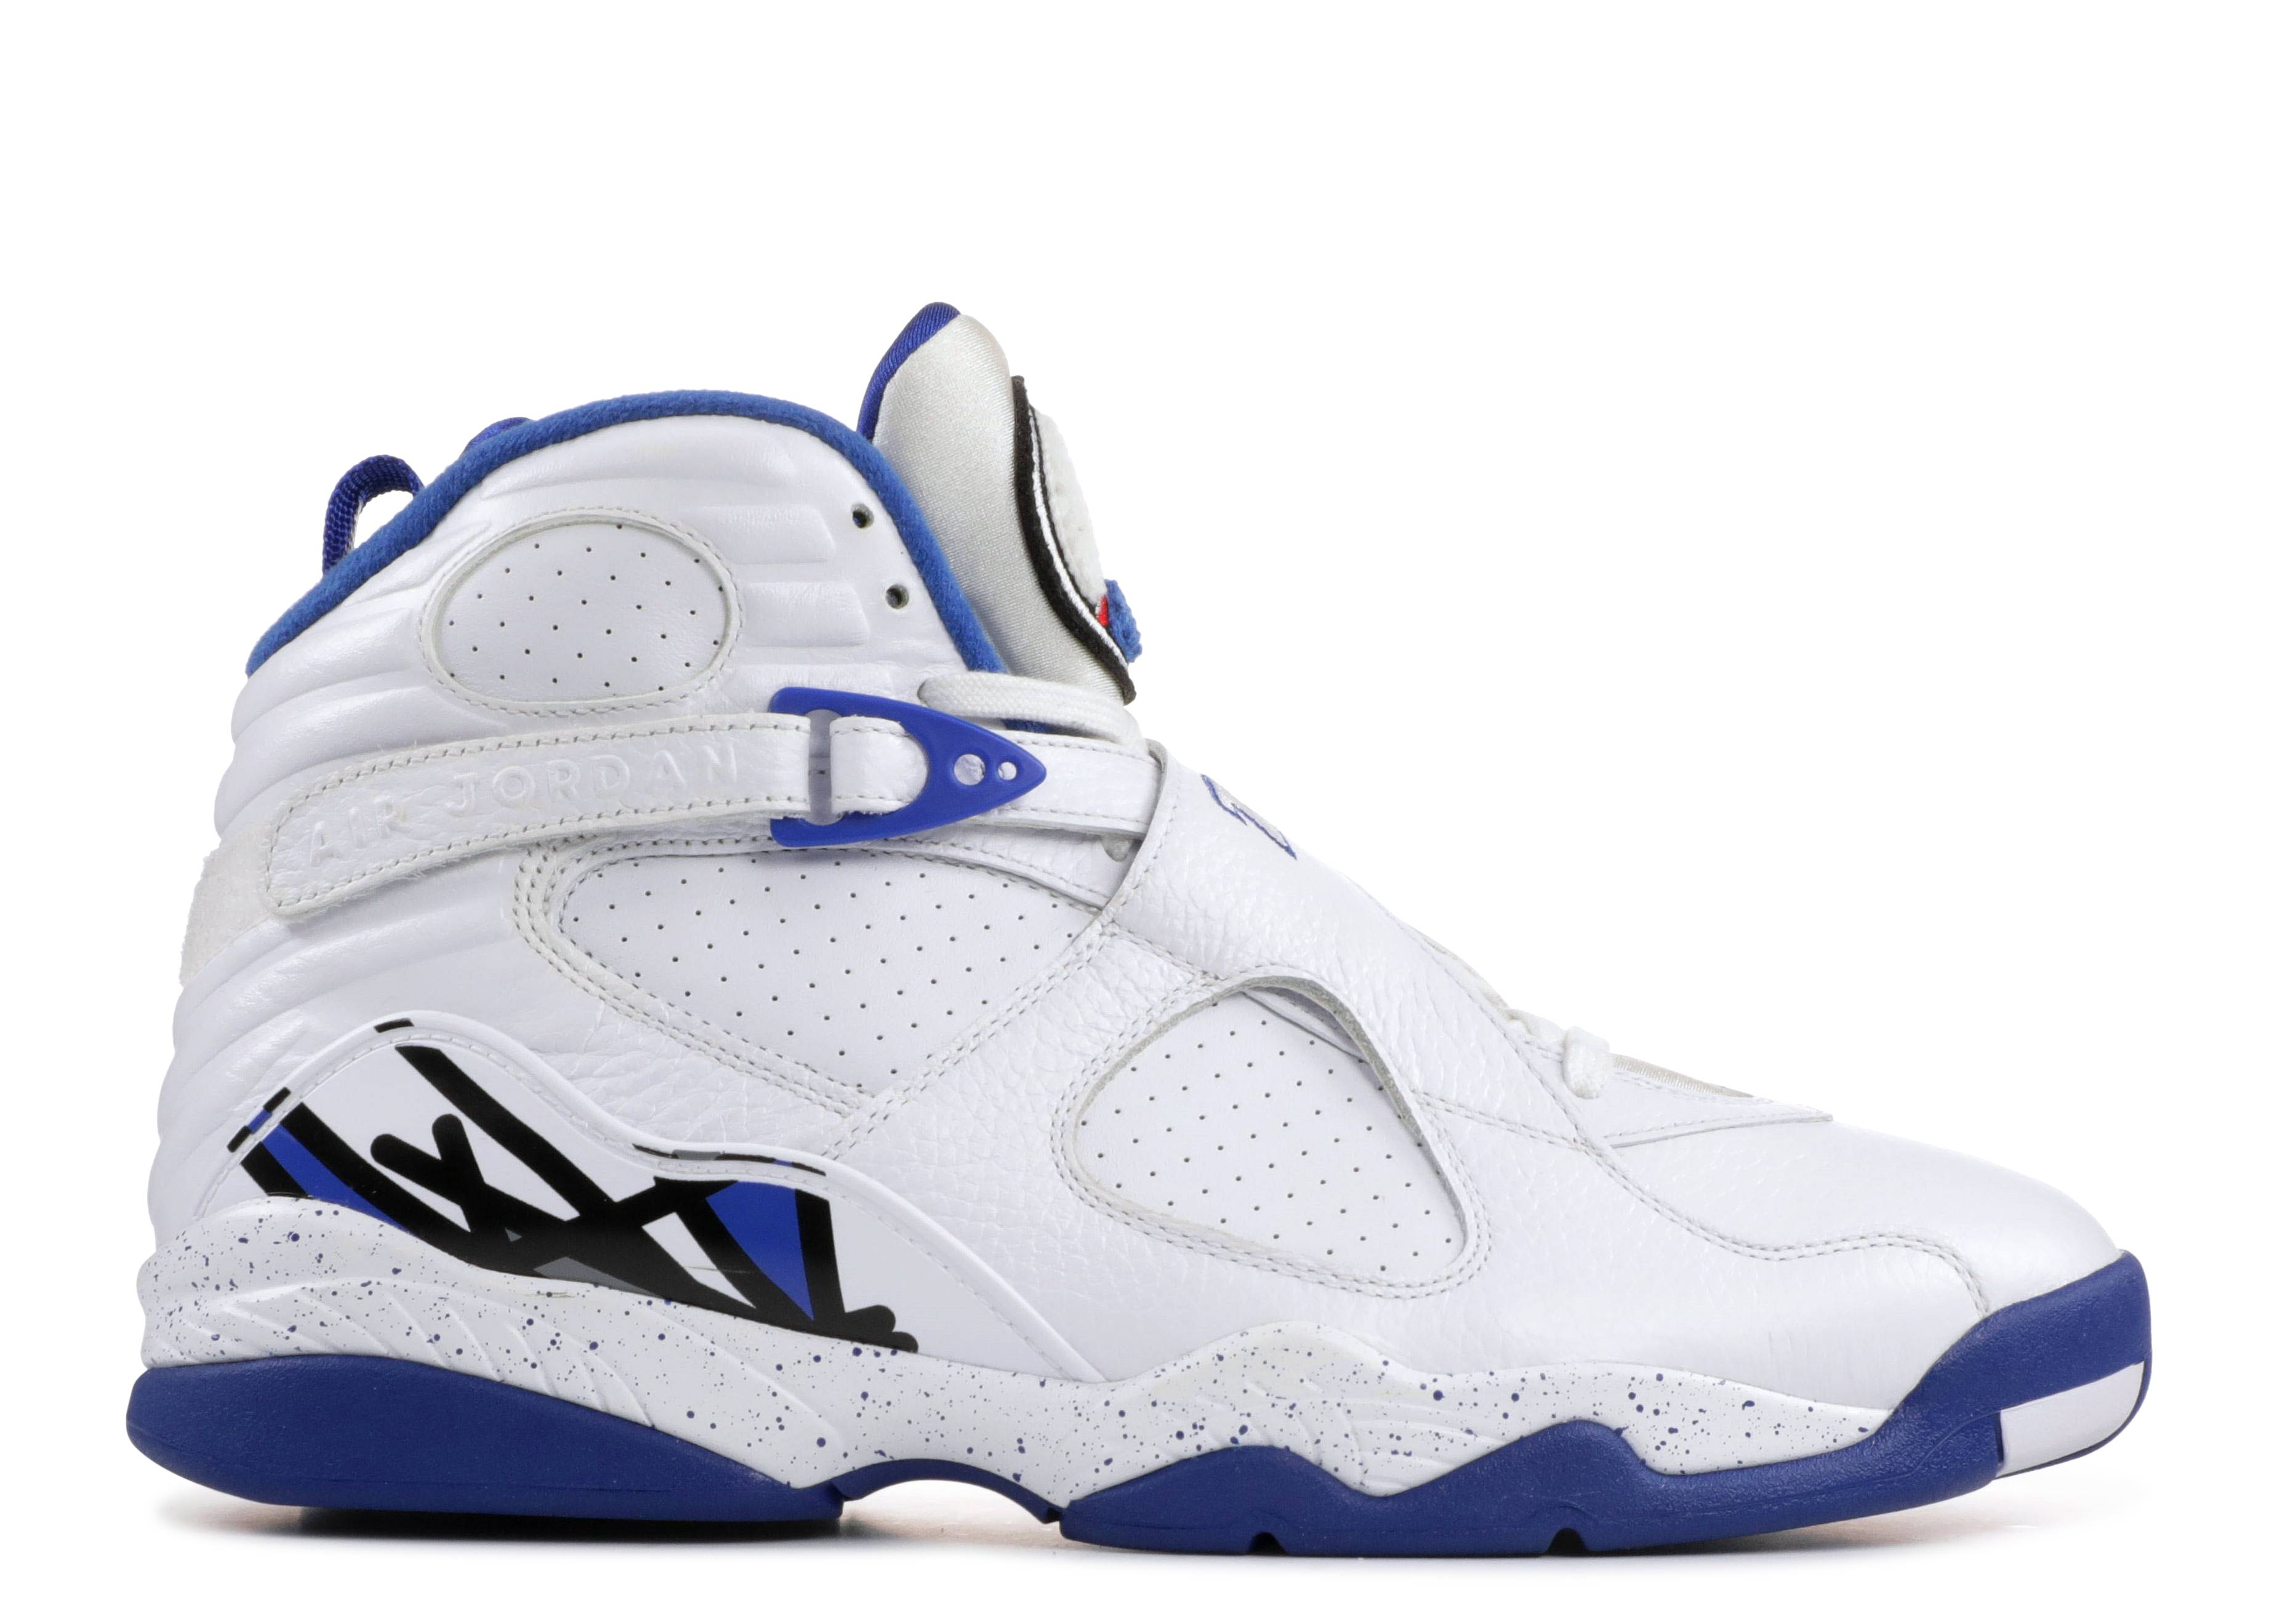 low priced 5920f a85a7 Air Jordan 8